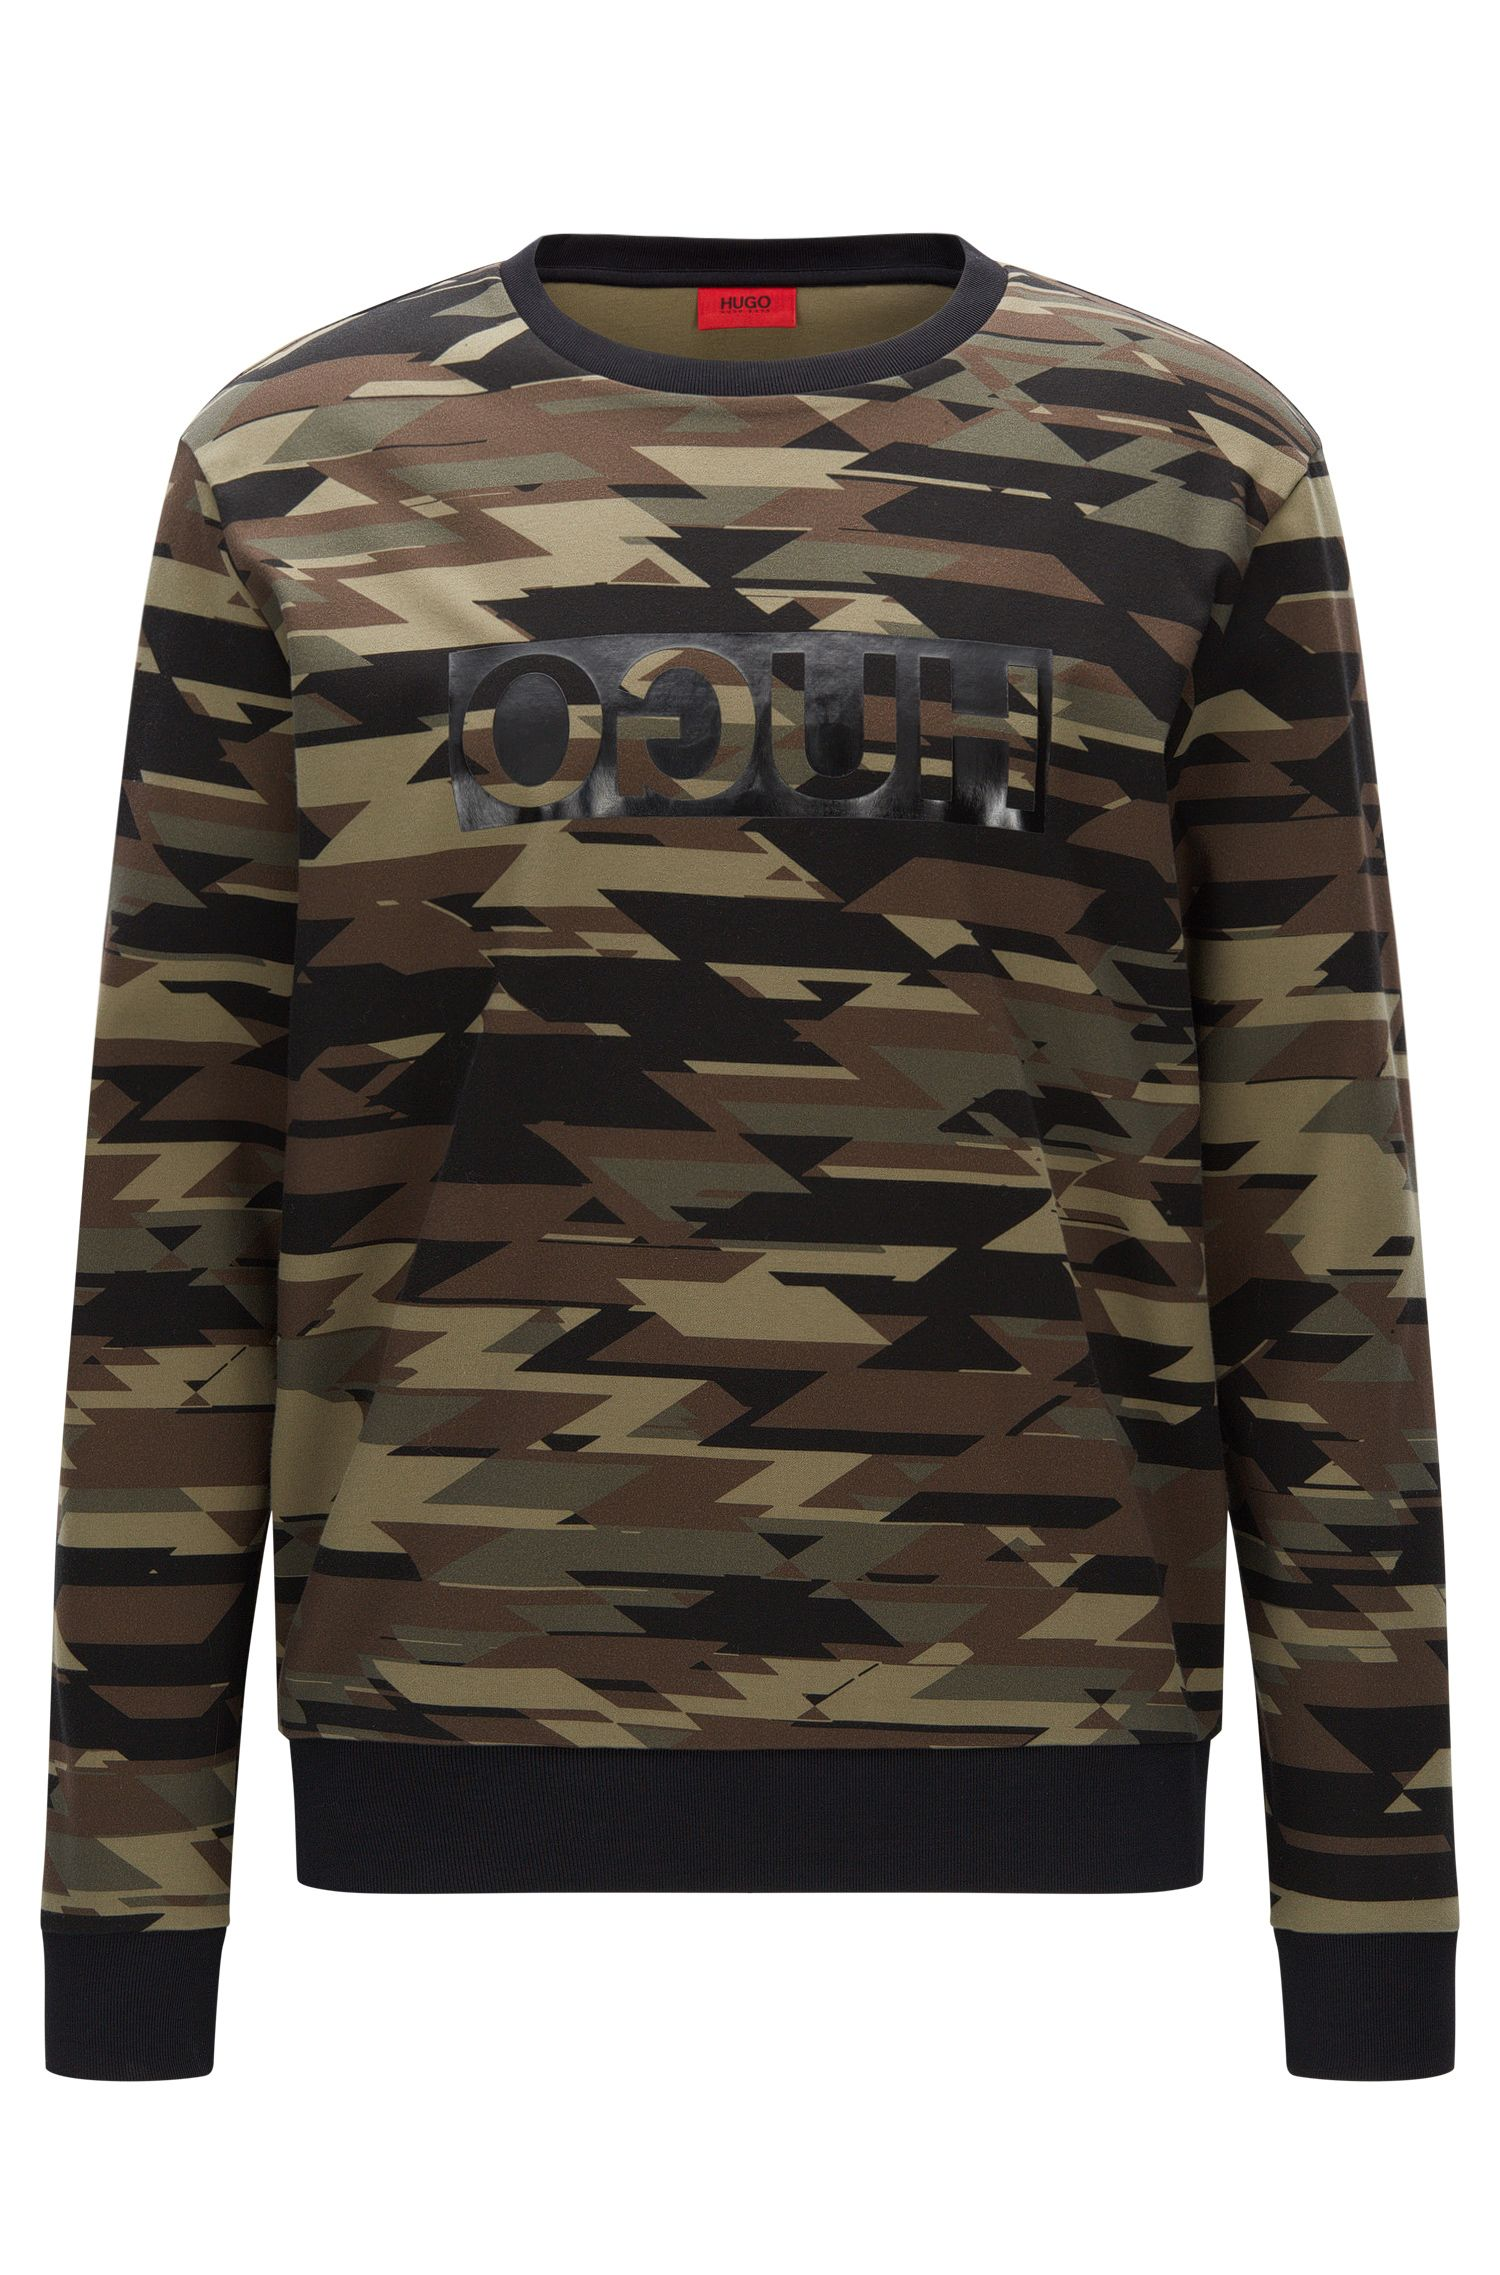 'Driggs' | Camouflage Cotton Sweatershirt